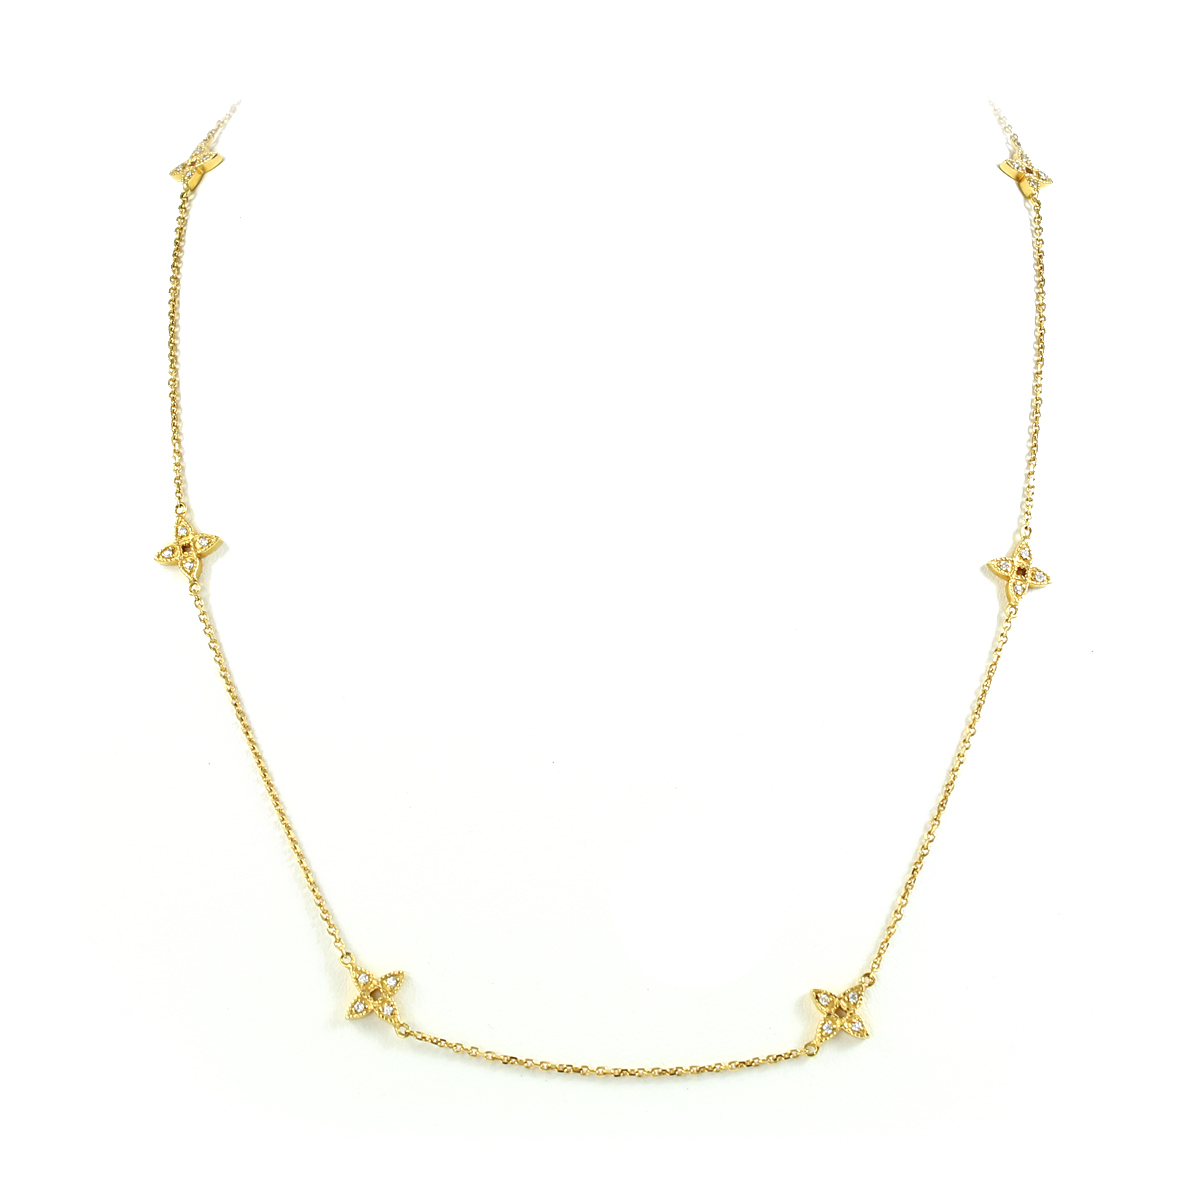 Vintage 14 Karat Yellow Gold Diamond Four Point Star Station Necklace